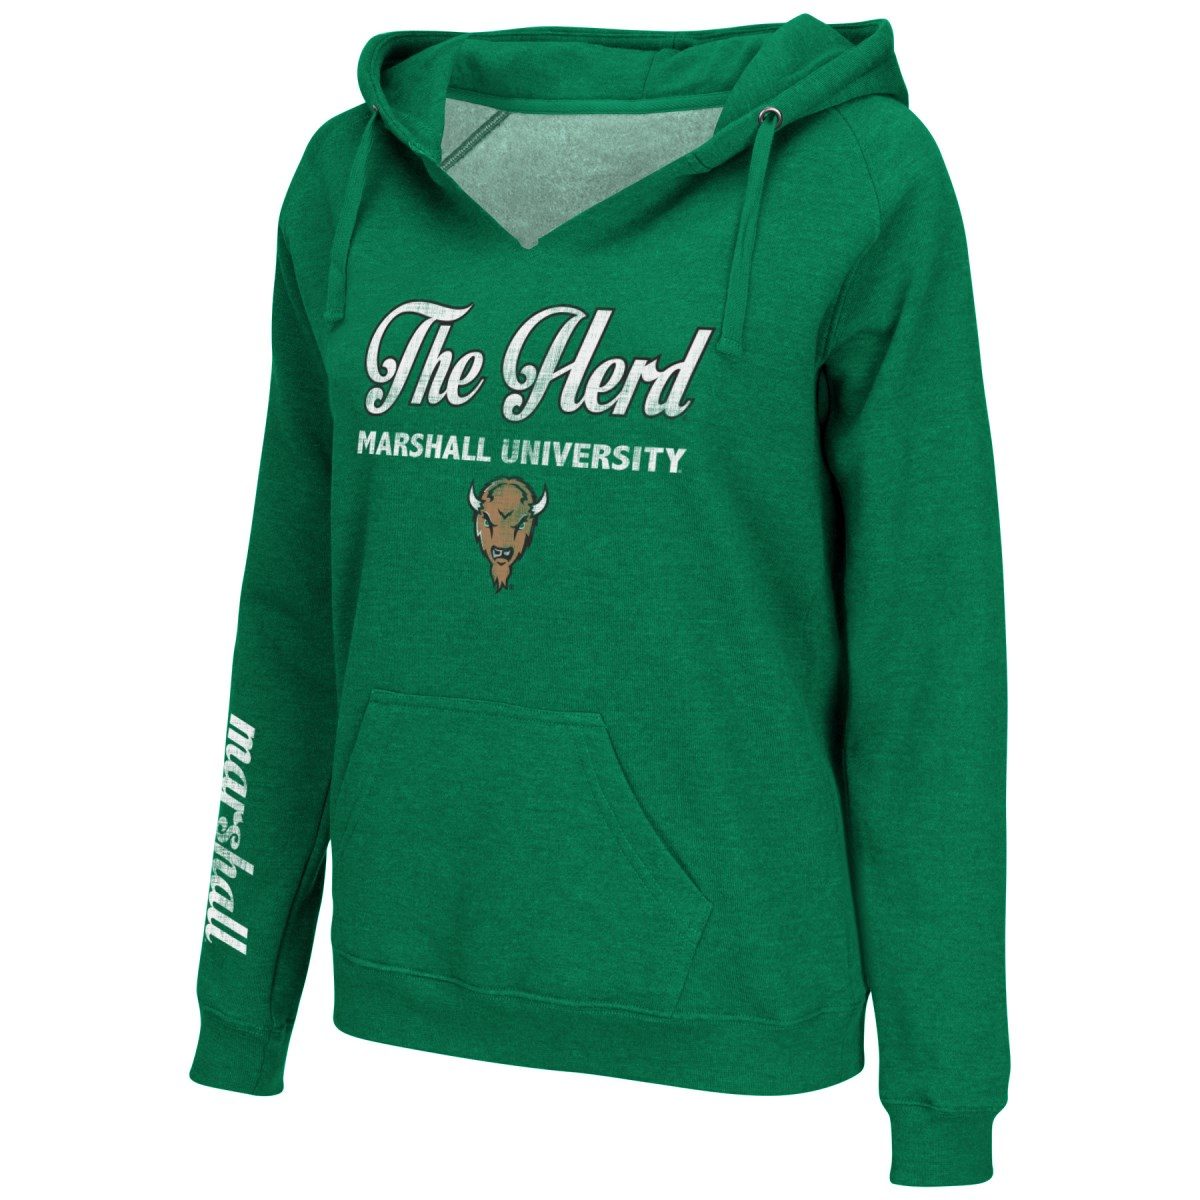 Marshall Thundering Herd Women's NCAA 2014 Throwback Pullover Hooded Sweatshirt